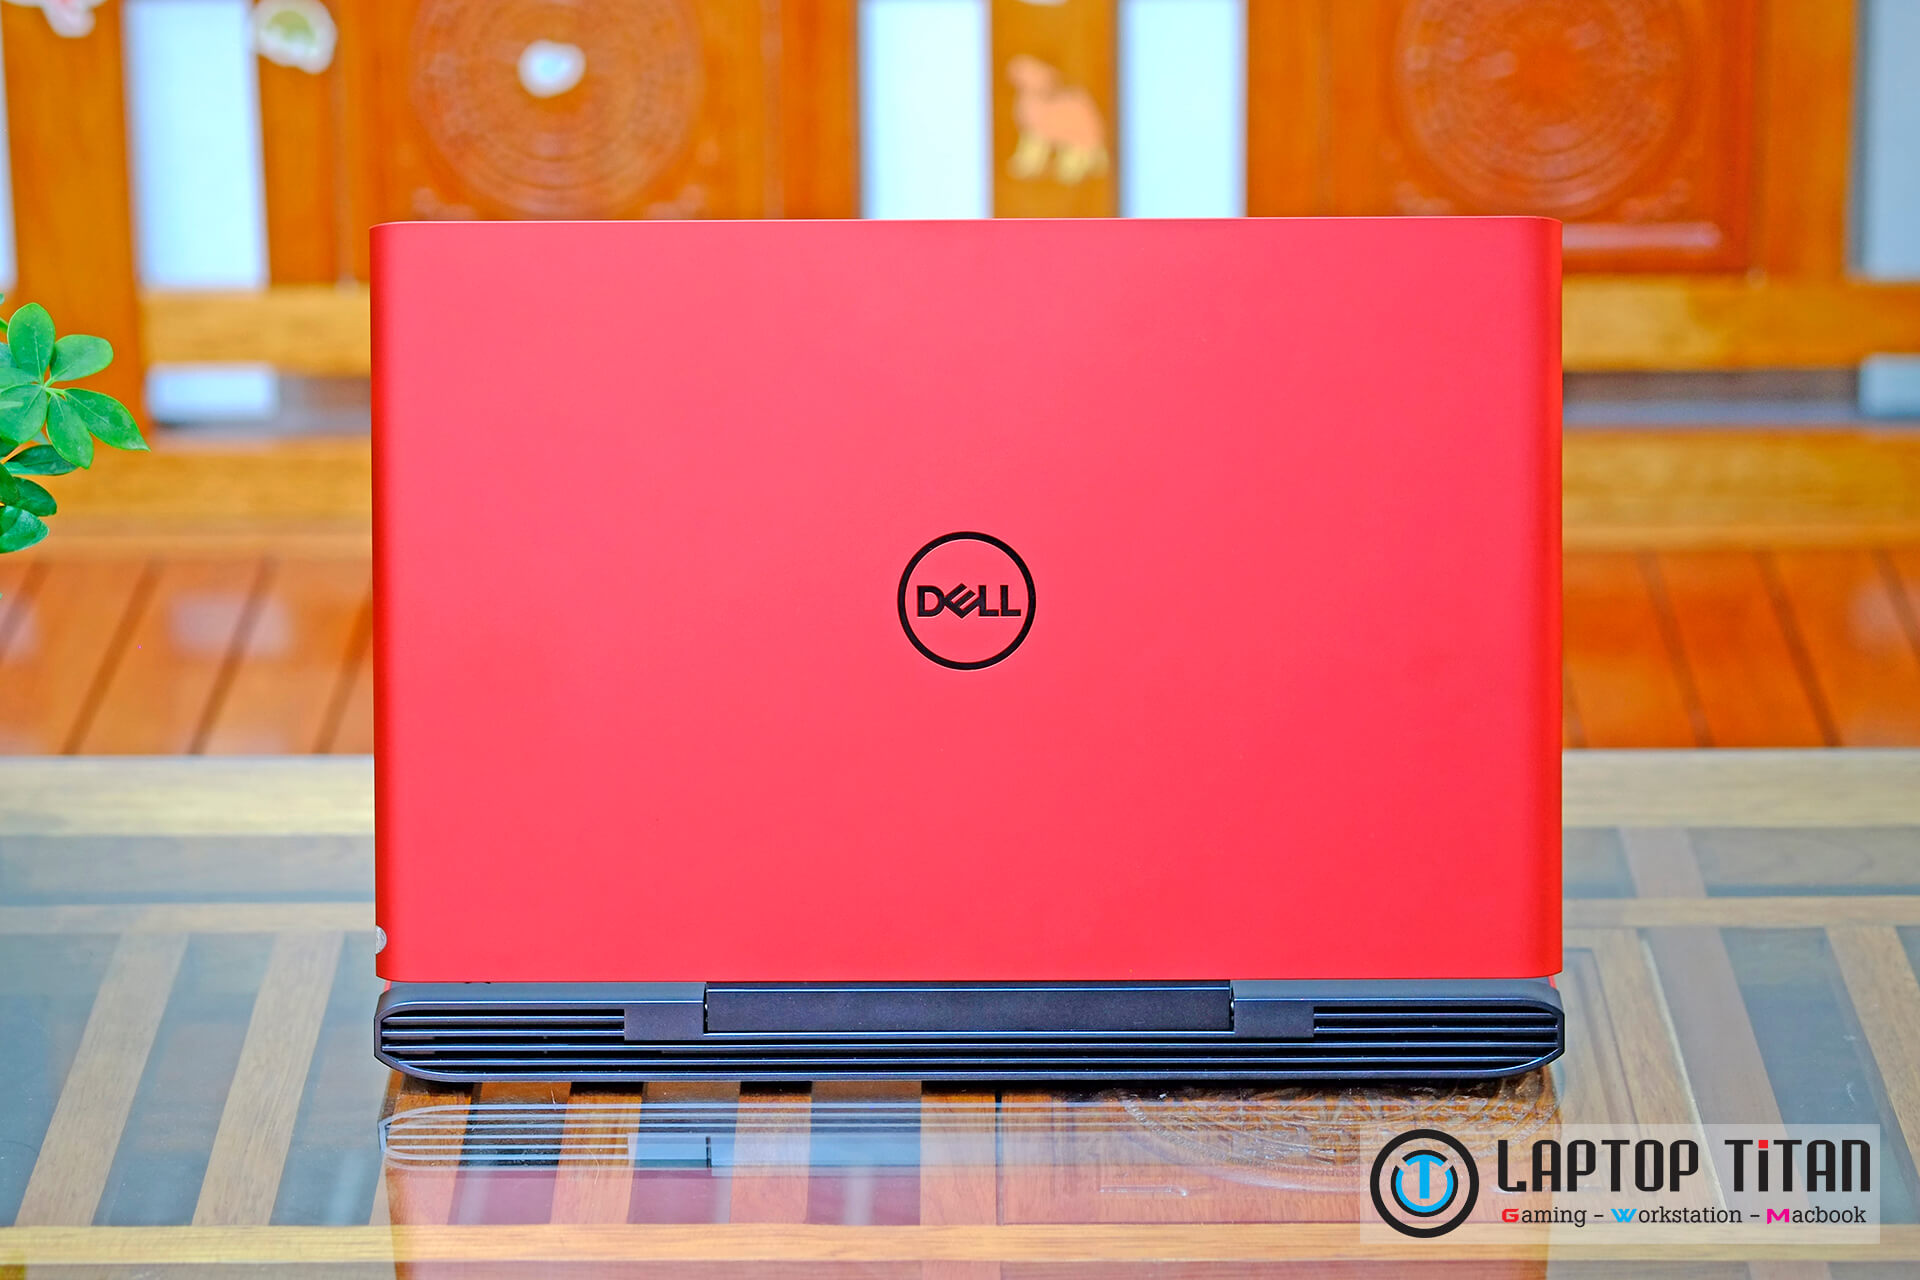 Dell G5 5587 laptoptitan 08